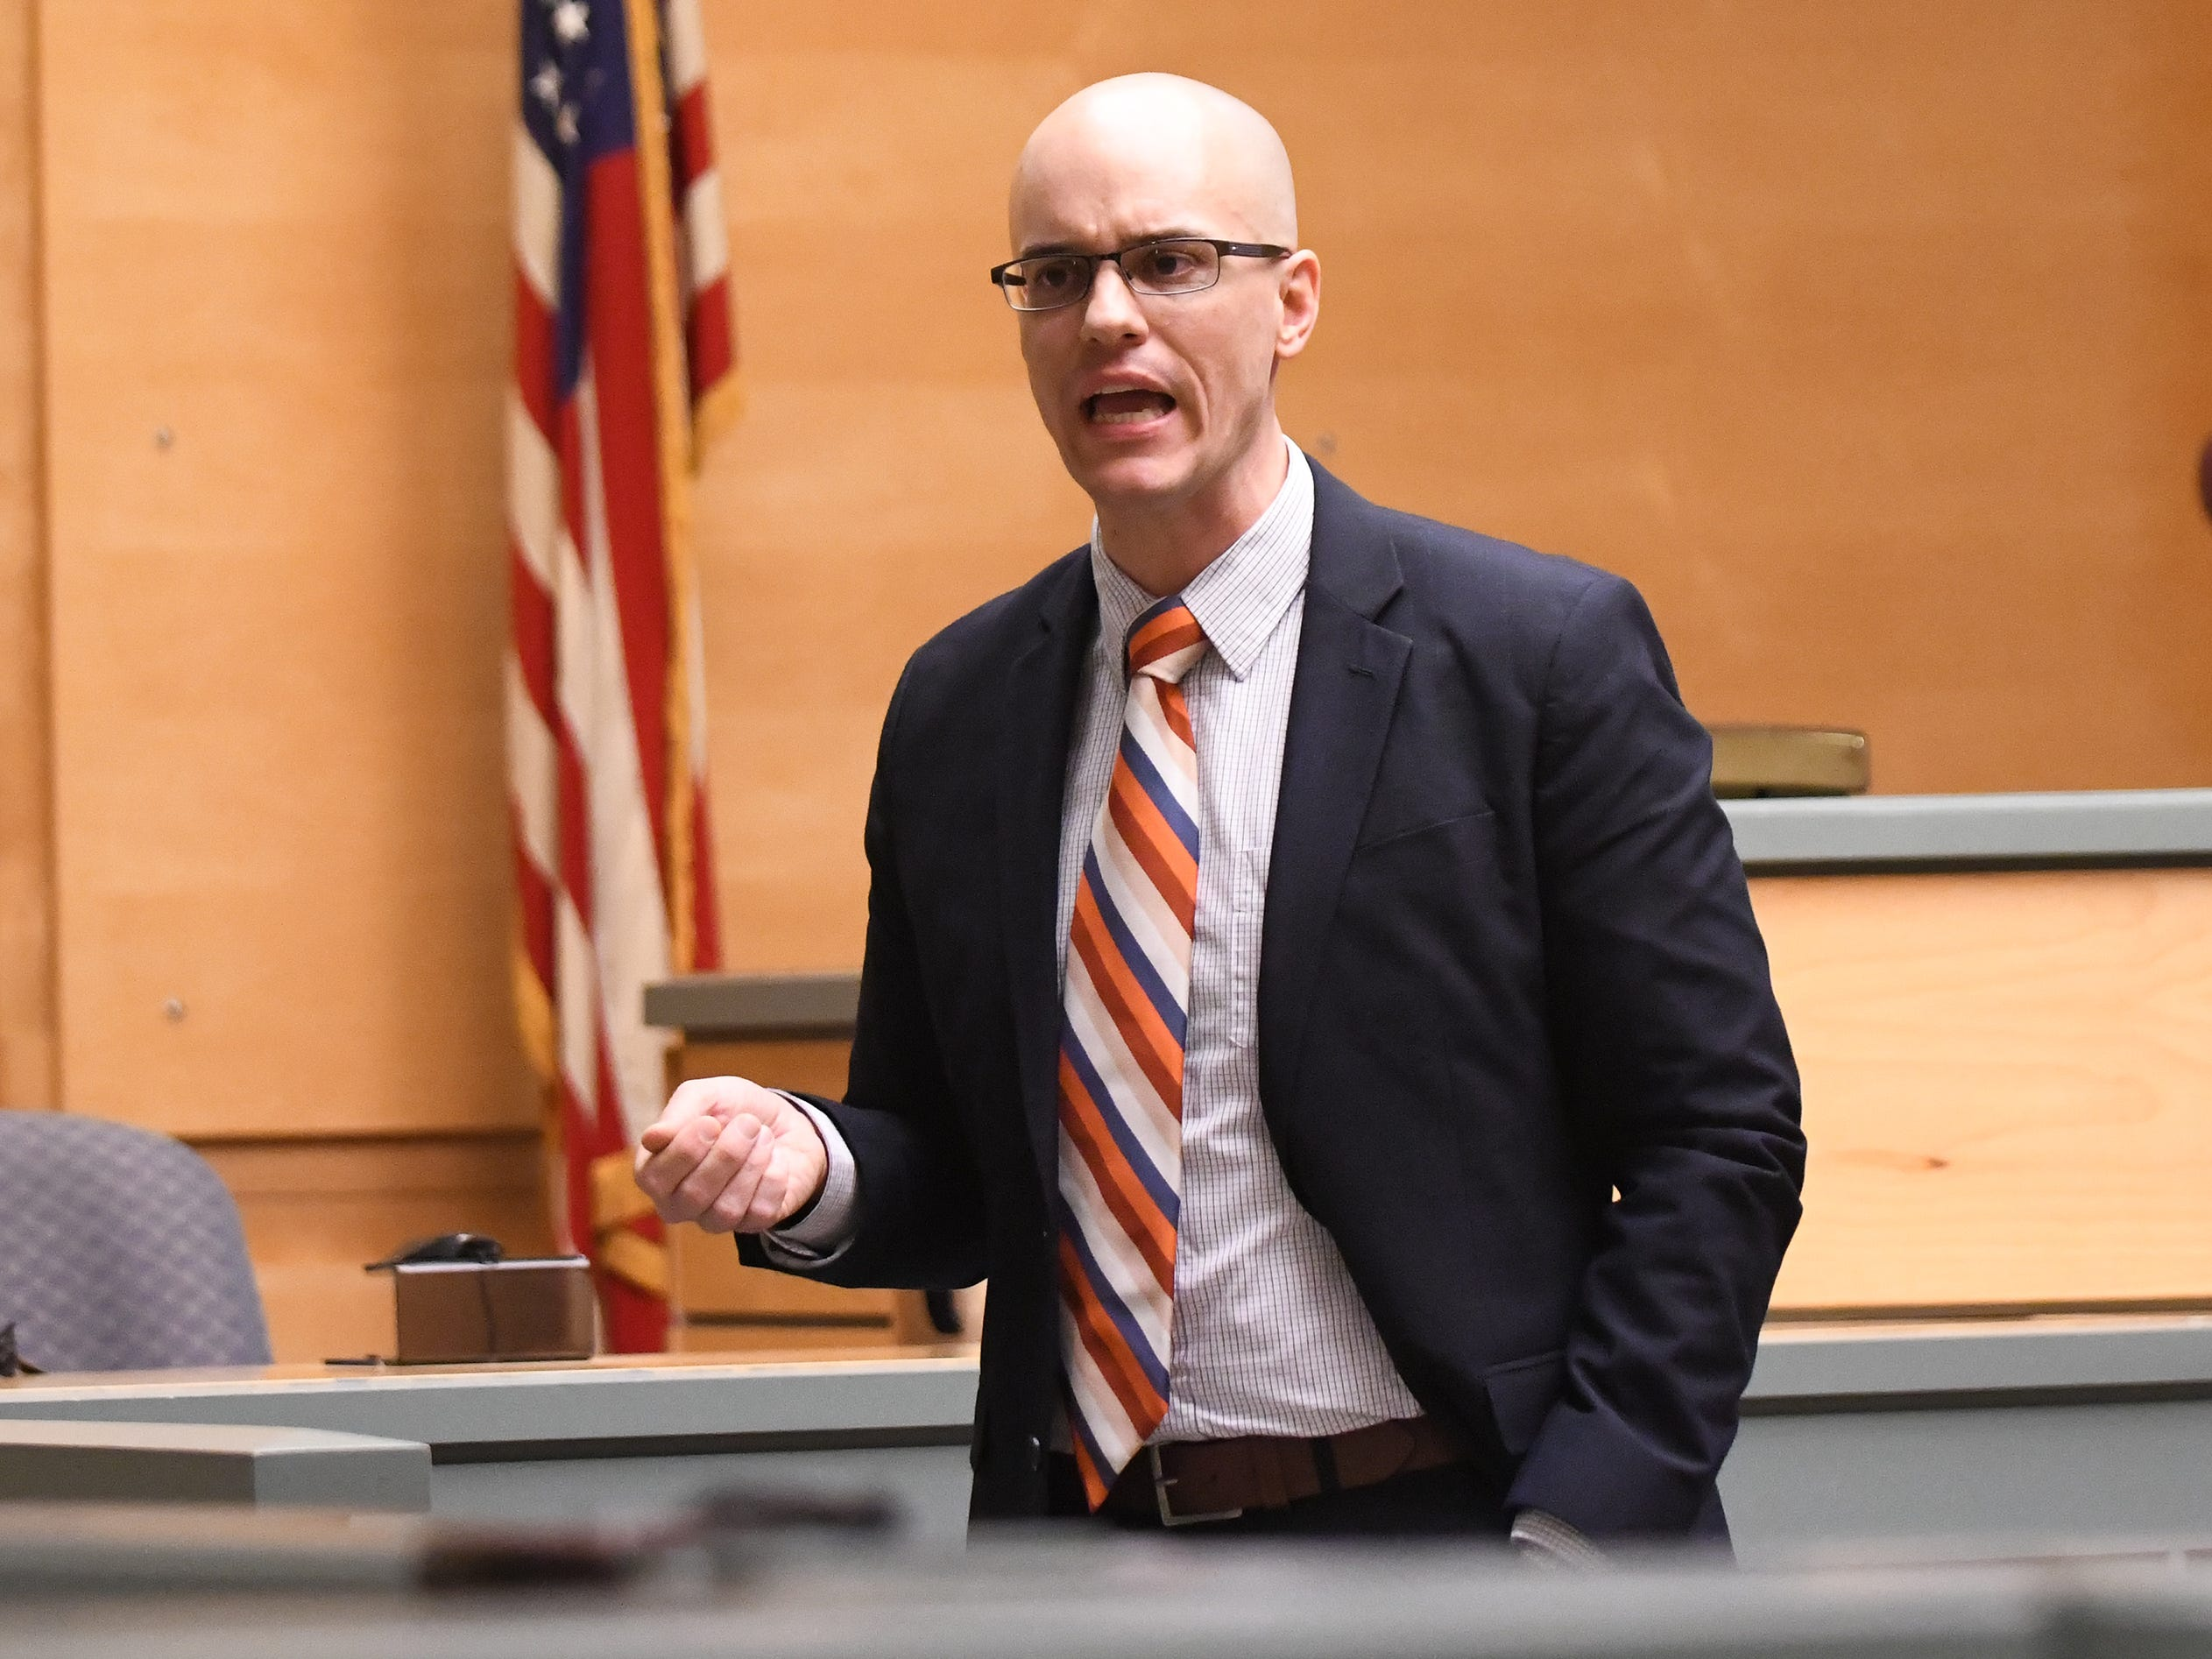 County Assistant Prosecutor Charles Wettstein delivers his opening statements to jurors in the murder trial of Jeremiah E. Monell in Cumberland County Superior Court on Thursday, January 3, 2019.